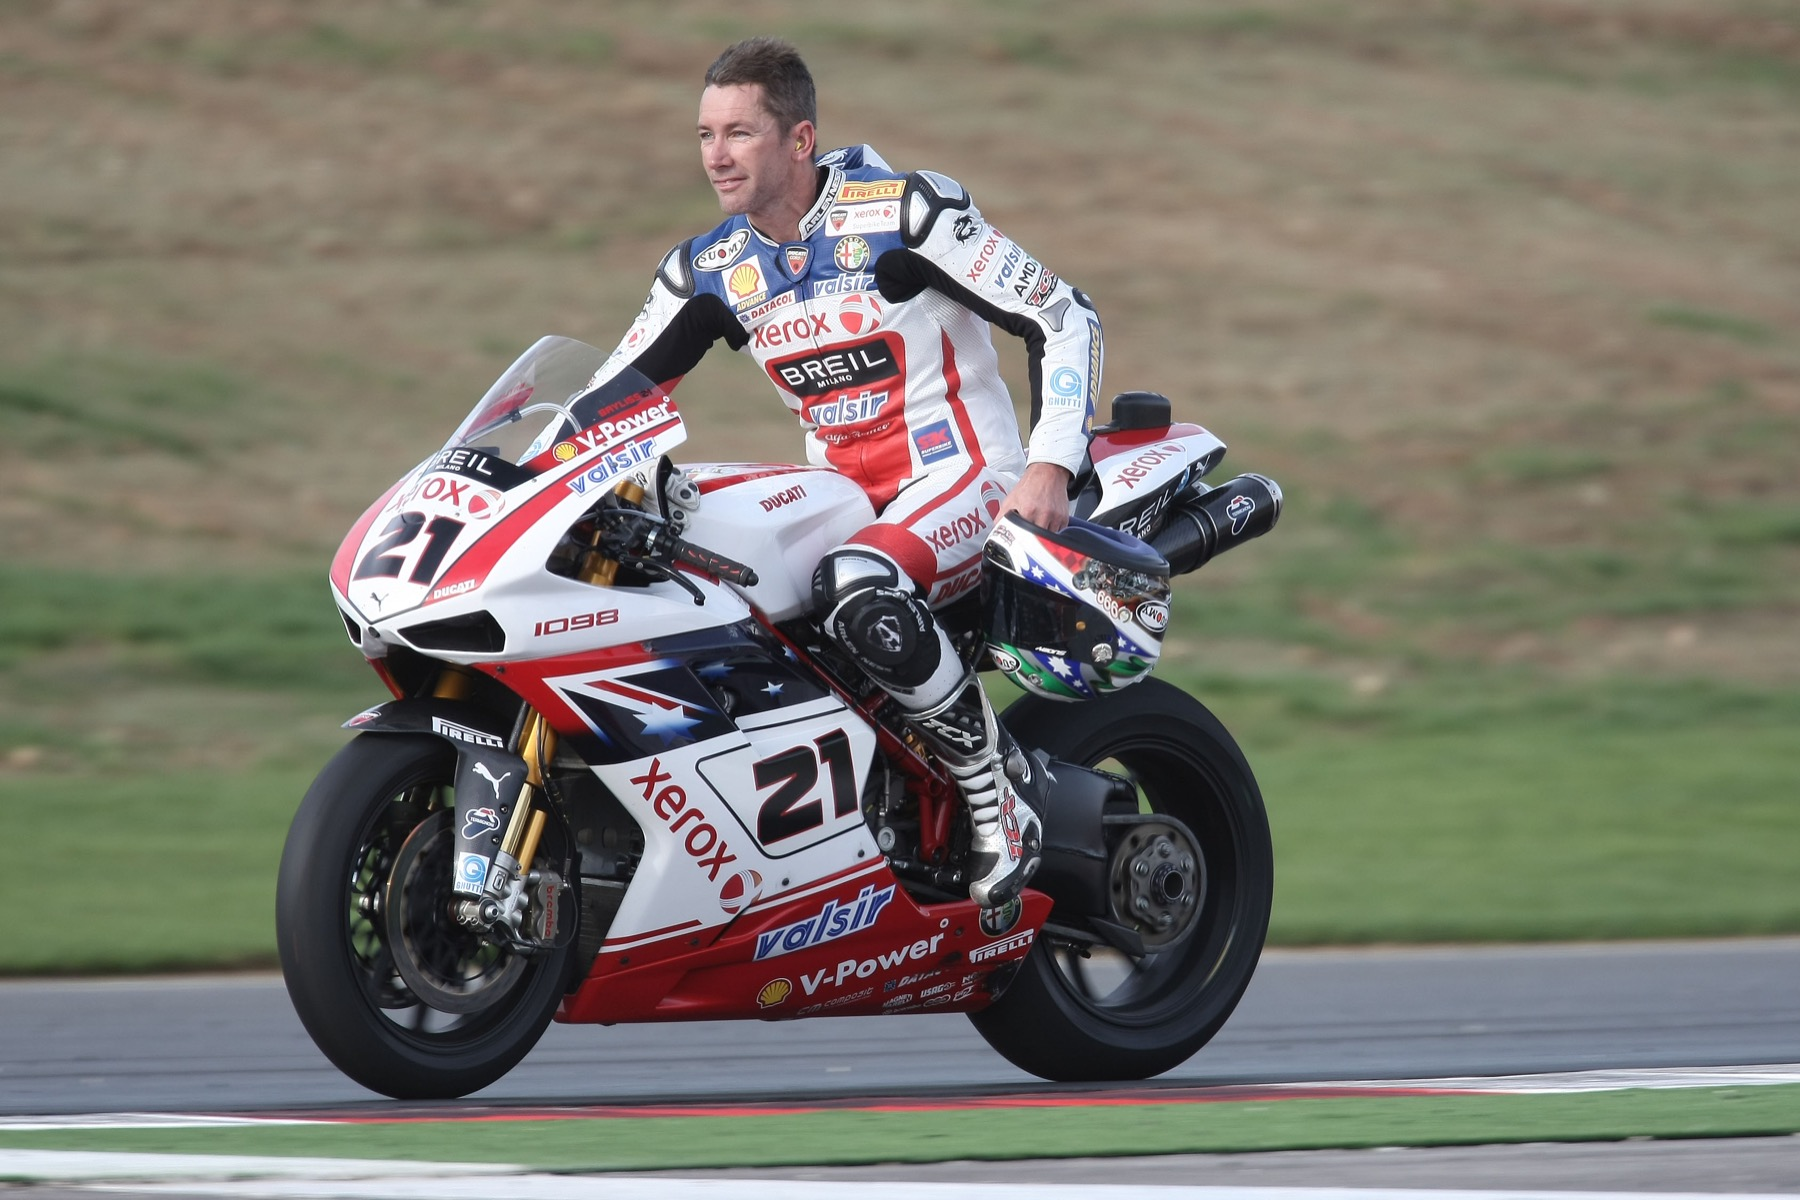 Troy Bayliss, su carrera en fotos